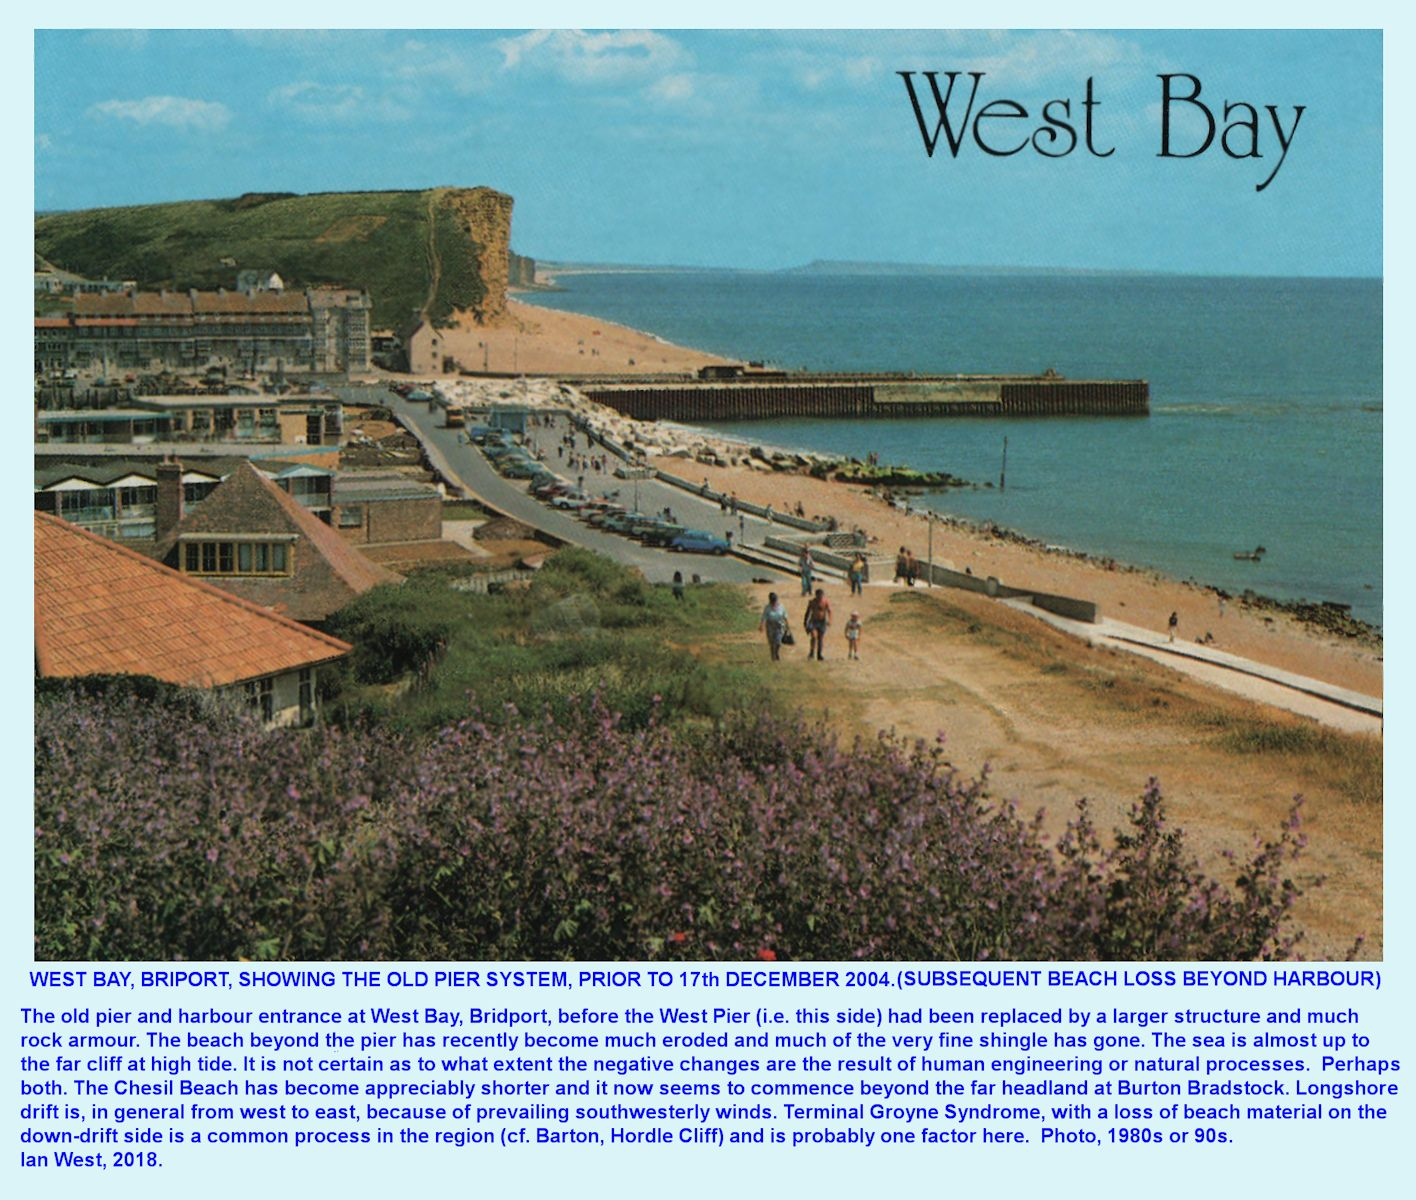 View, old postcard modified, looking eastward of the old piers and harbour entrance of West Bay, Bridport with, at that time, much very-fine silt still present on the far side, and before the recent beach loss there